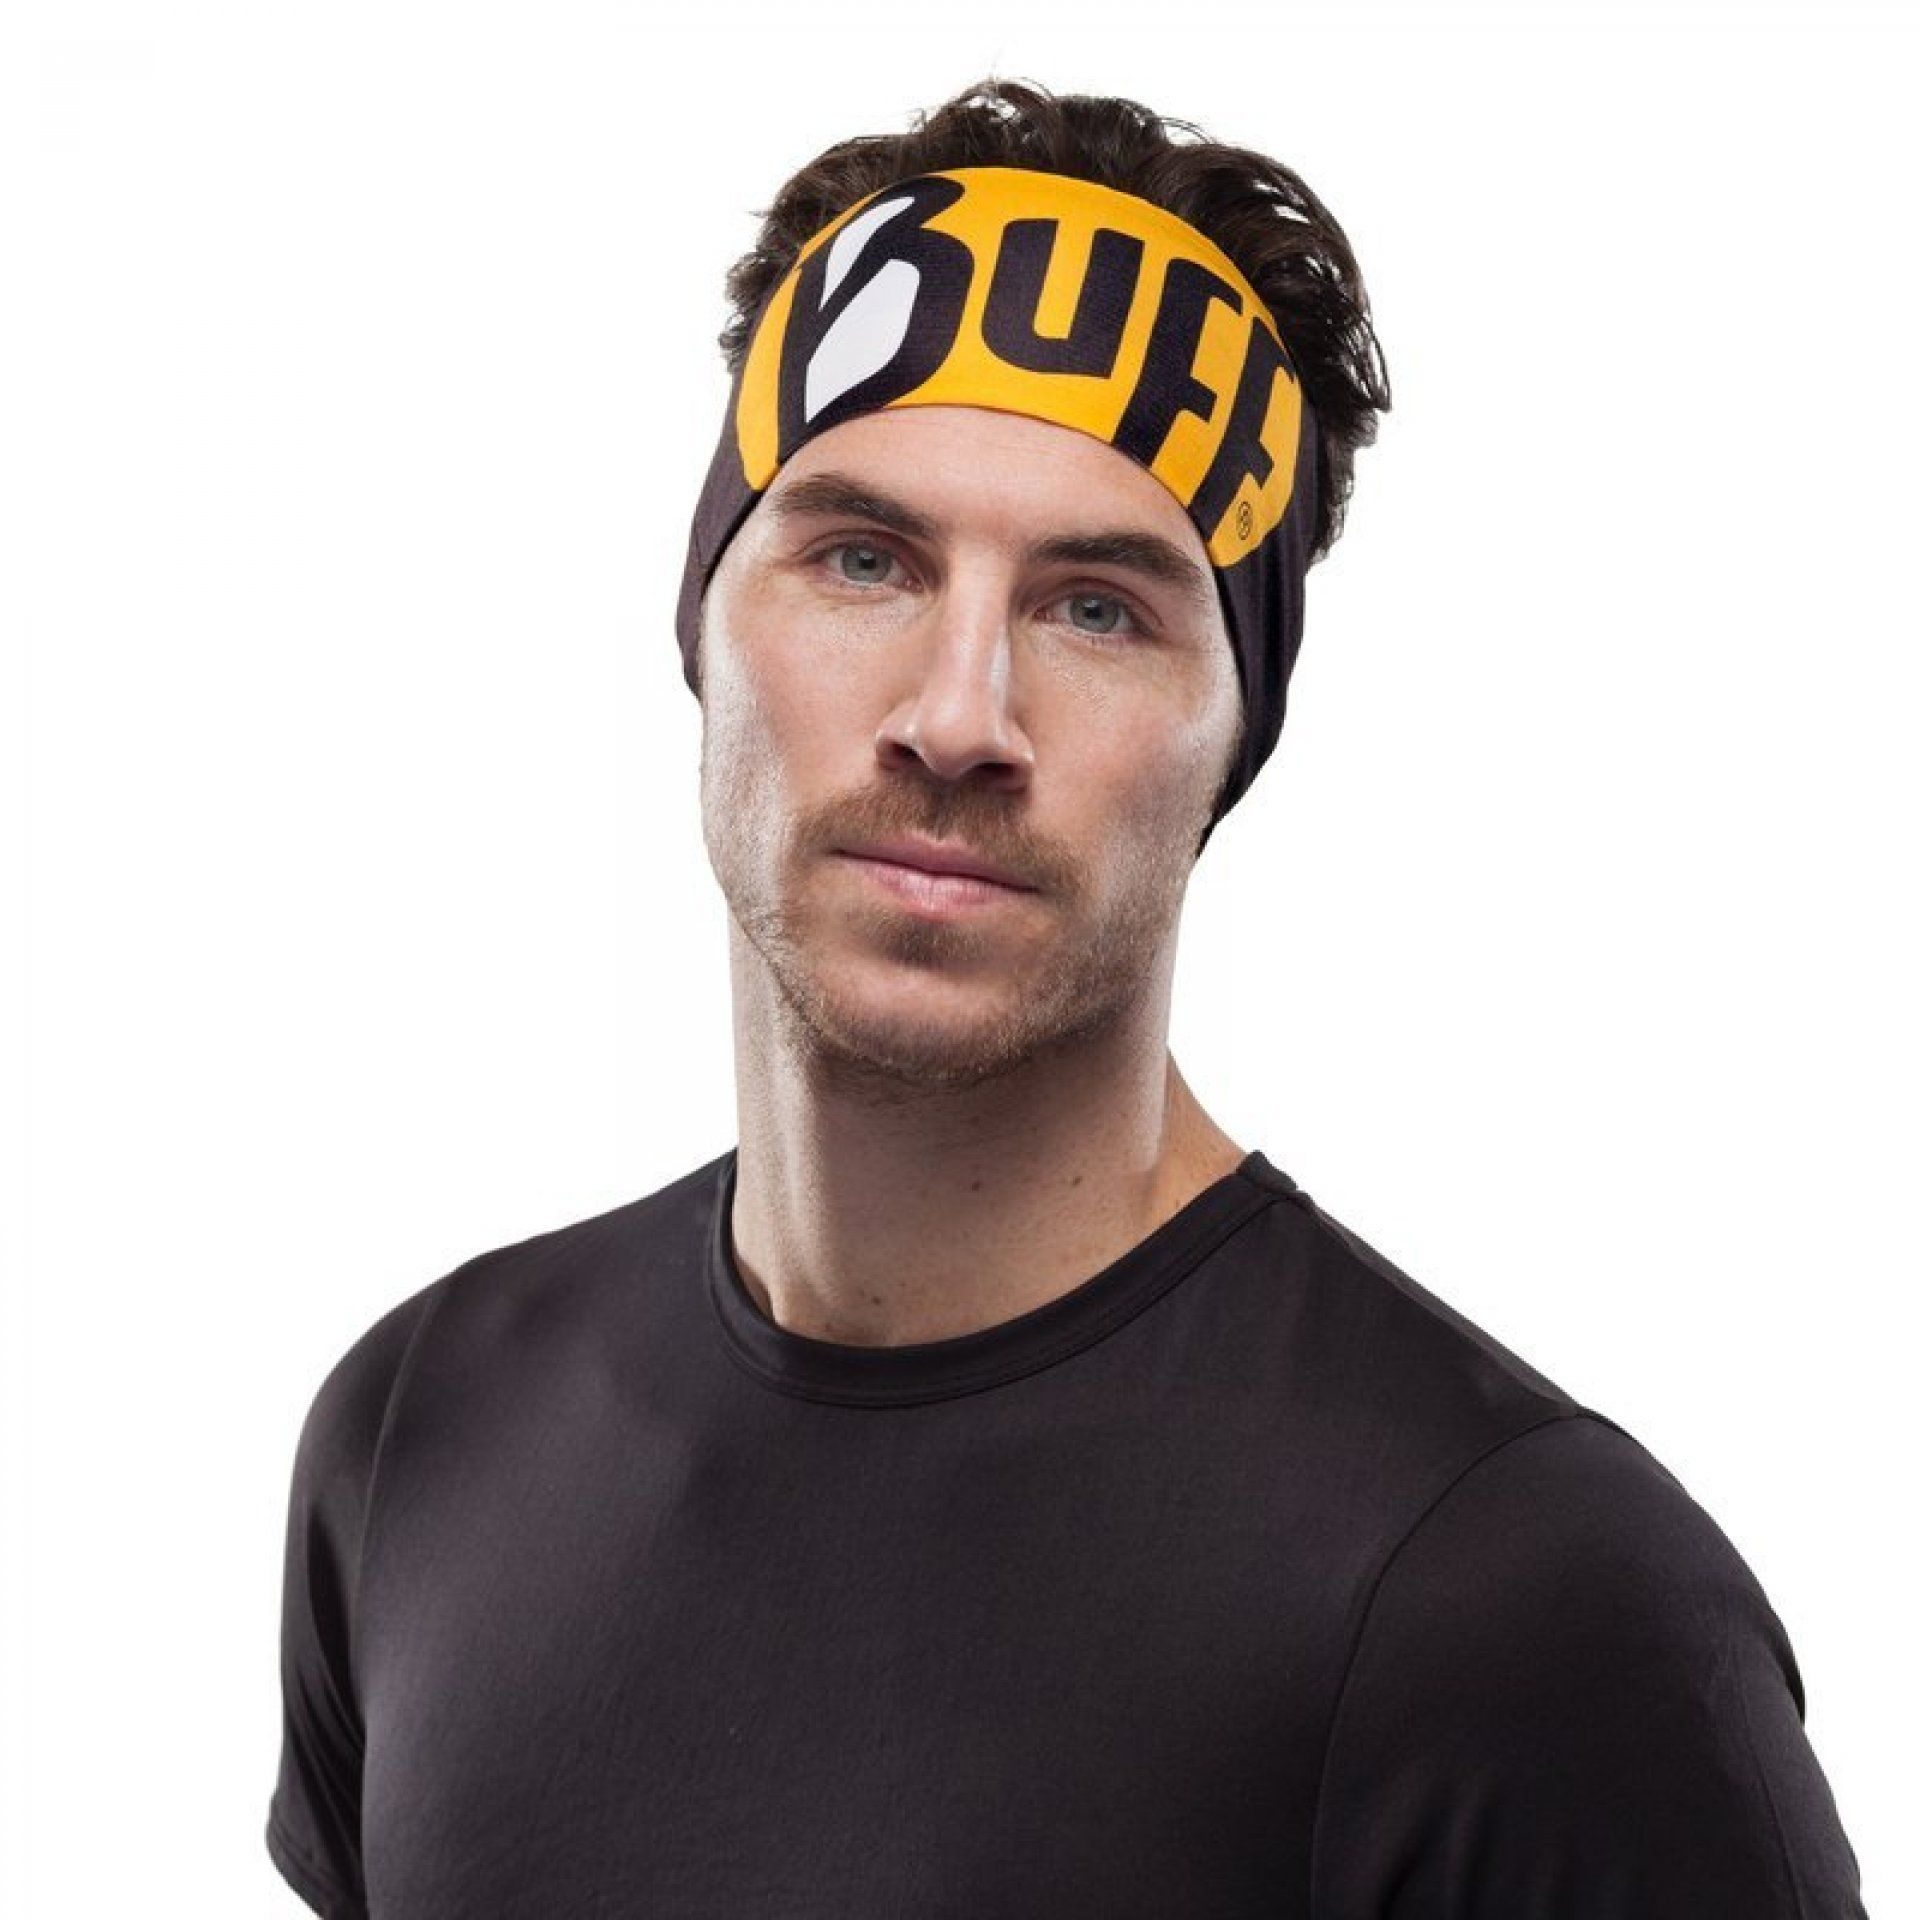 OPASKA BUFF COOLNET UV+ HEADBAND ULTIMATE LOGO BLACK NA MODELU